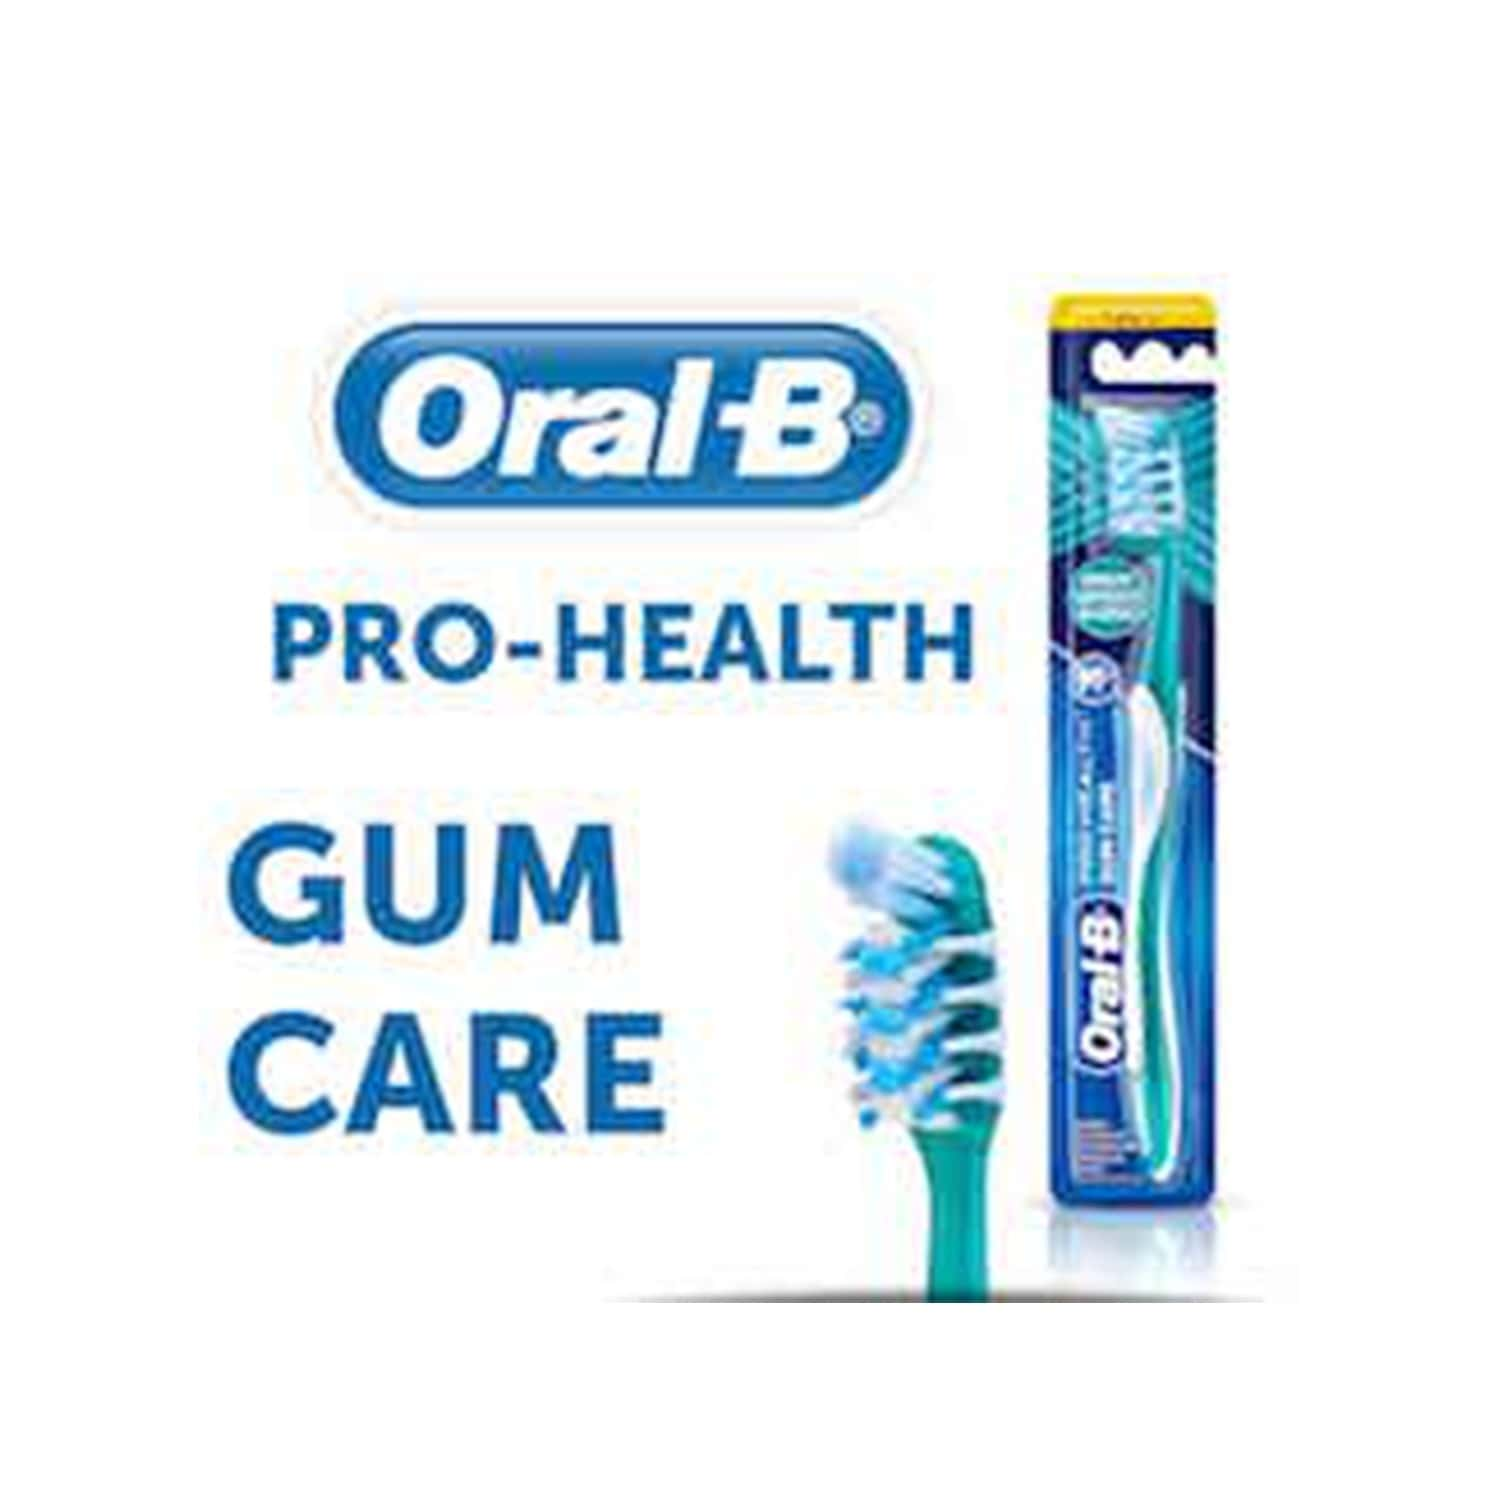 Oral-b Pro Health Soft Toothbrush Gum Care 1 Piece